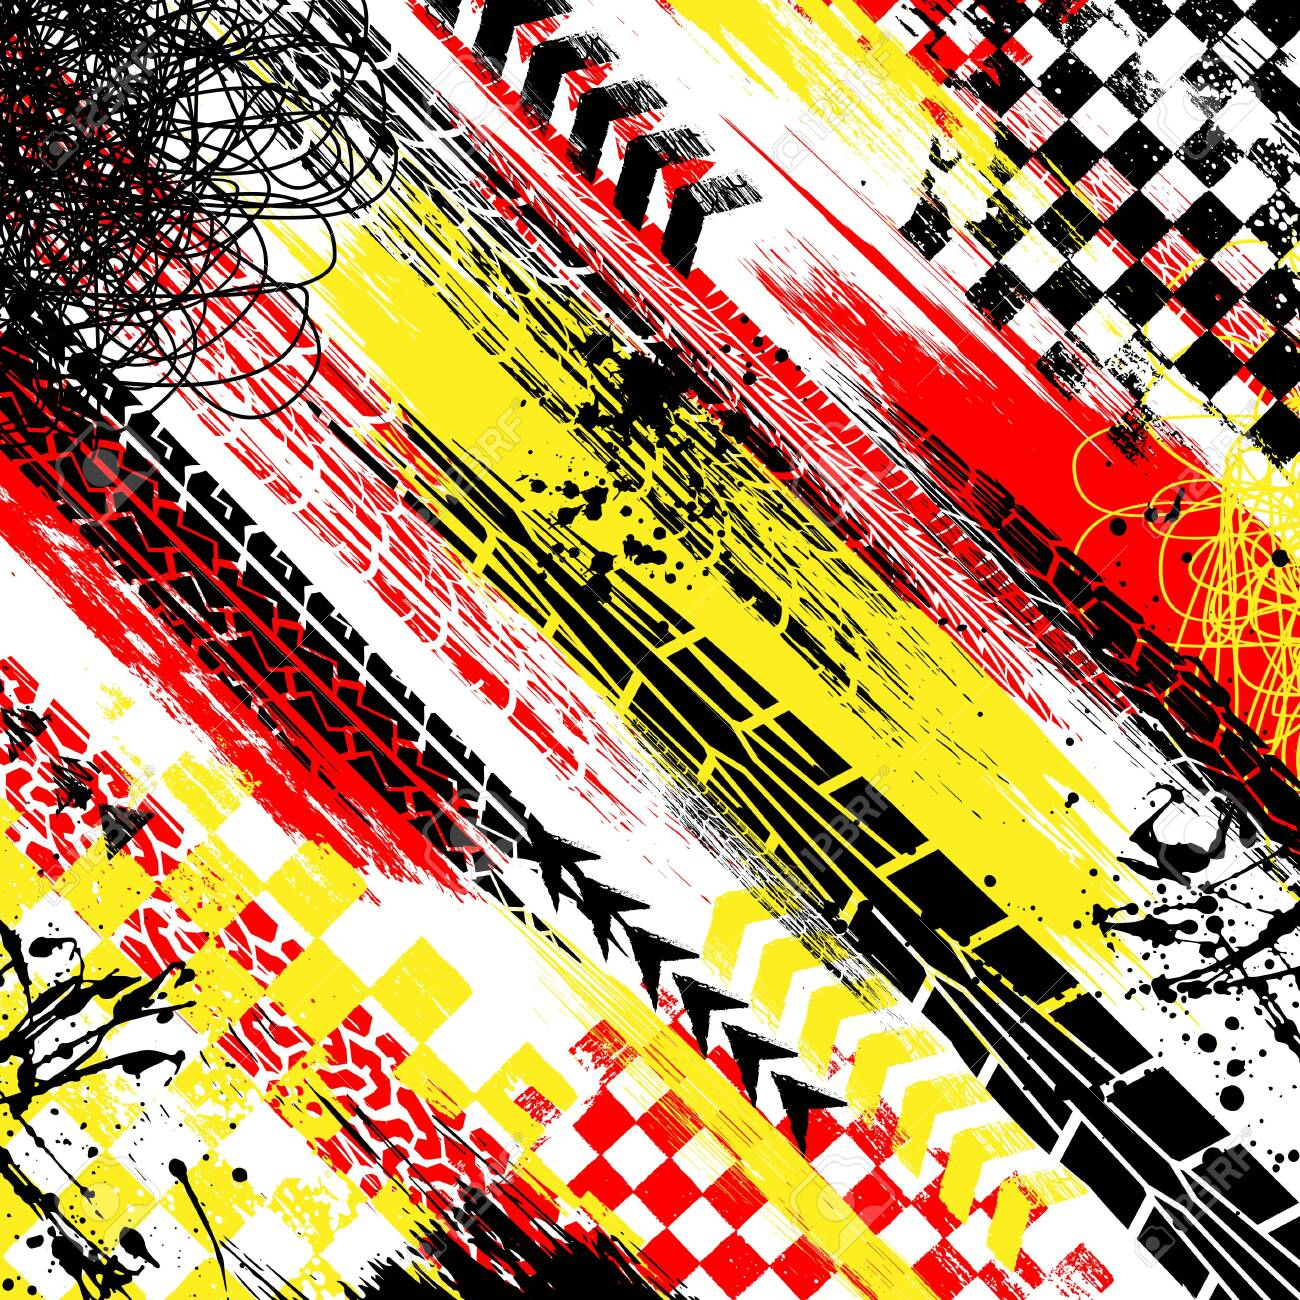 Abstract Background With Red Yellow And Black Grunge Splashes